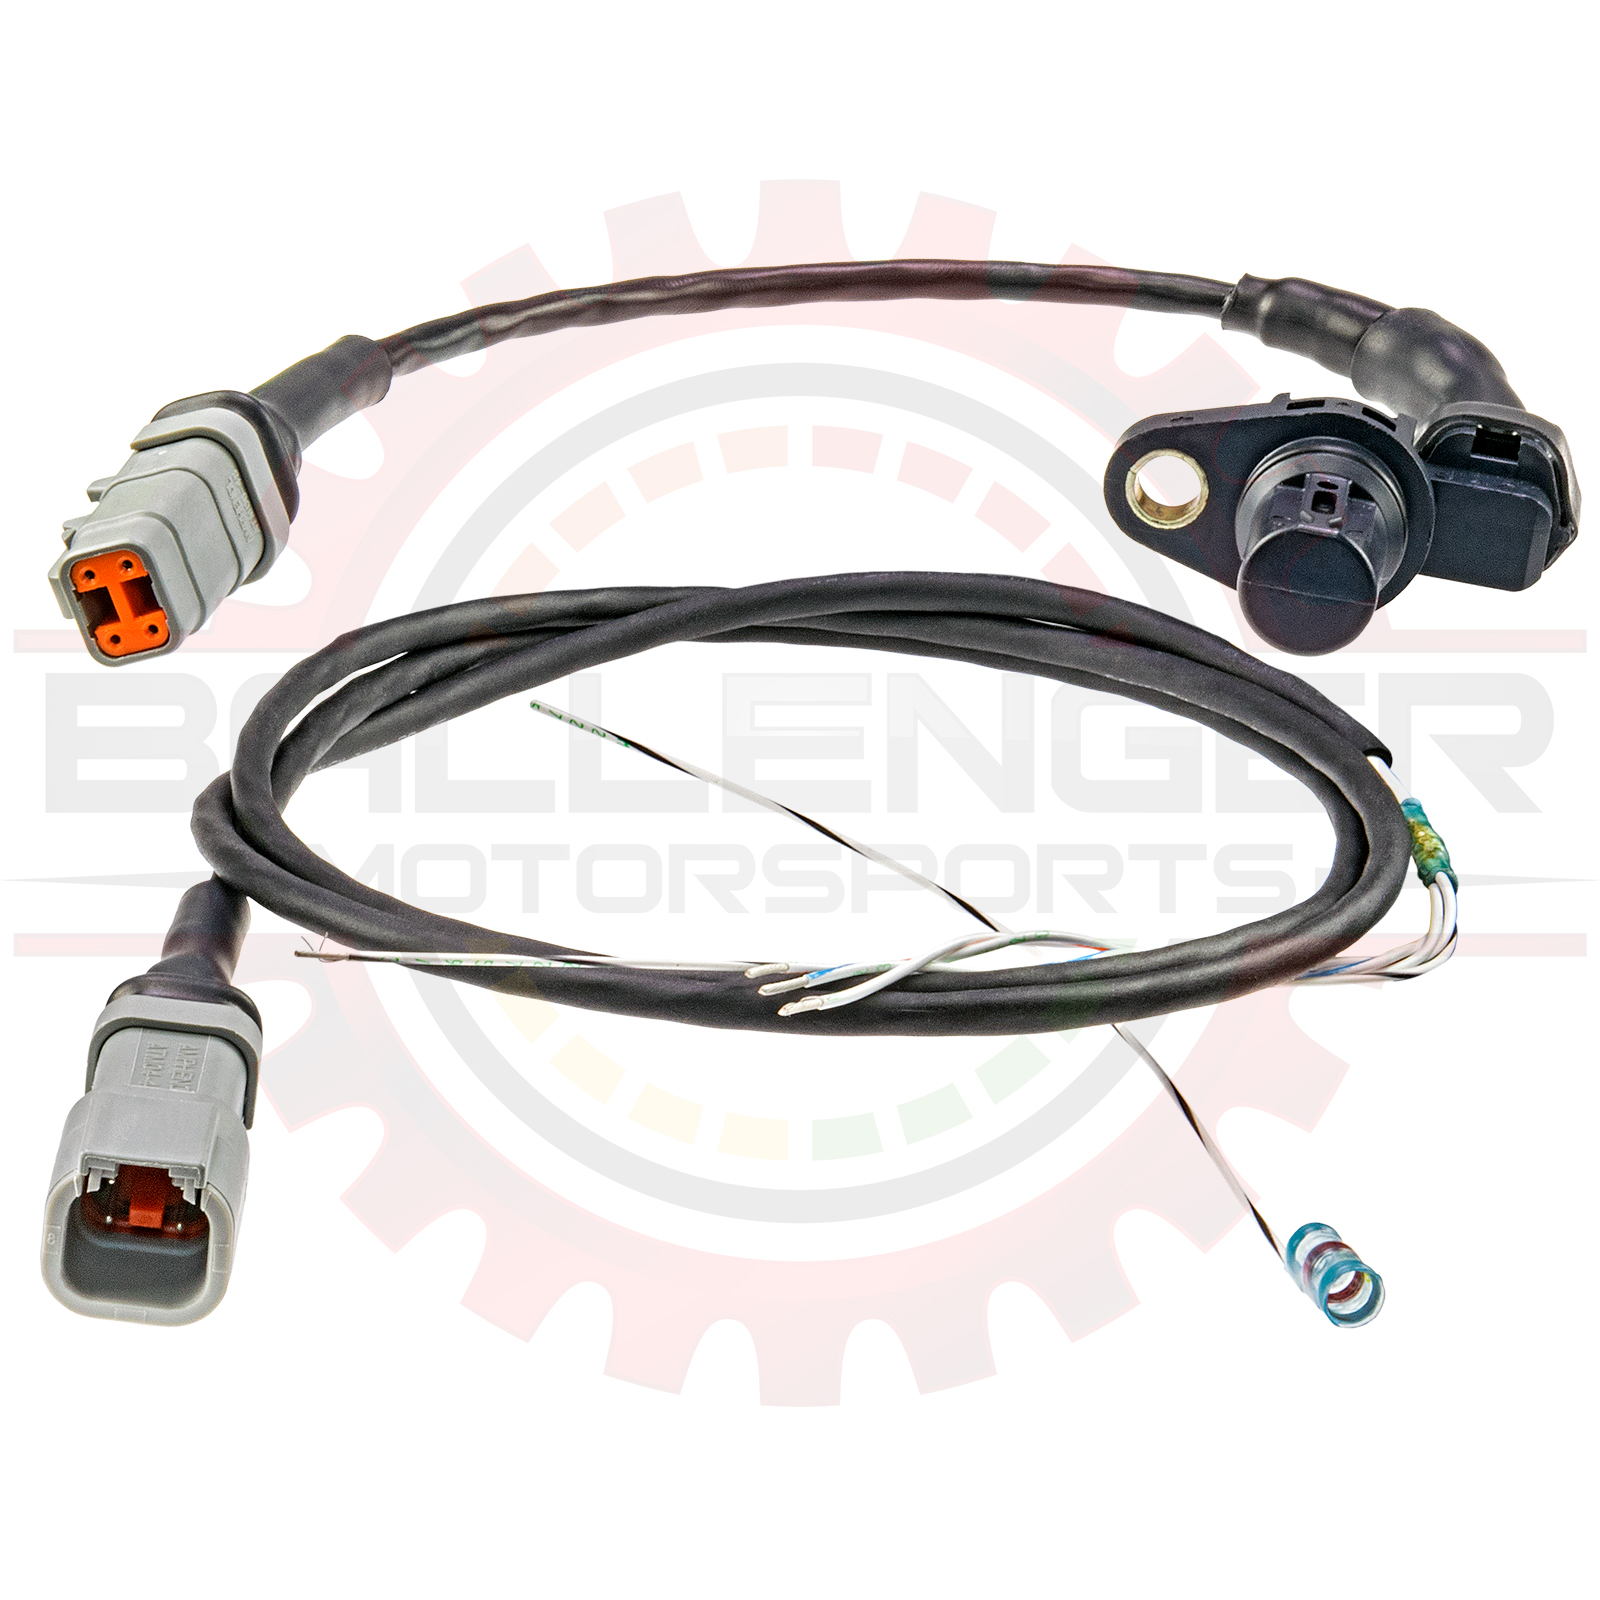 Home Shop Ballenger Motorsports Unlimited Miata Cam Sensor W Wiring Specialties 2jzgte Harness For Bmw E36 Pro Shielded